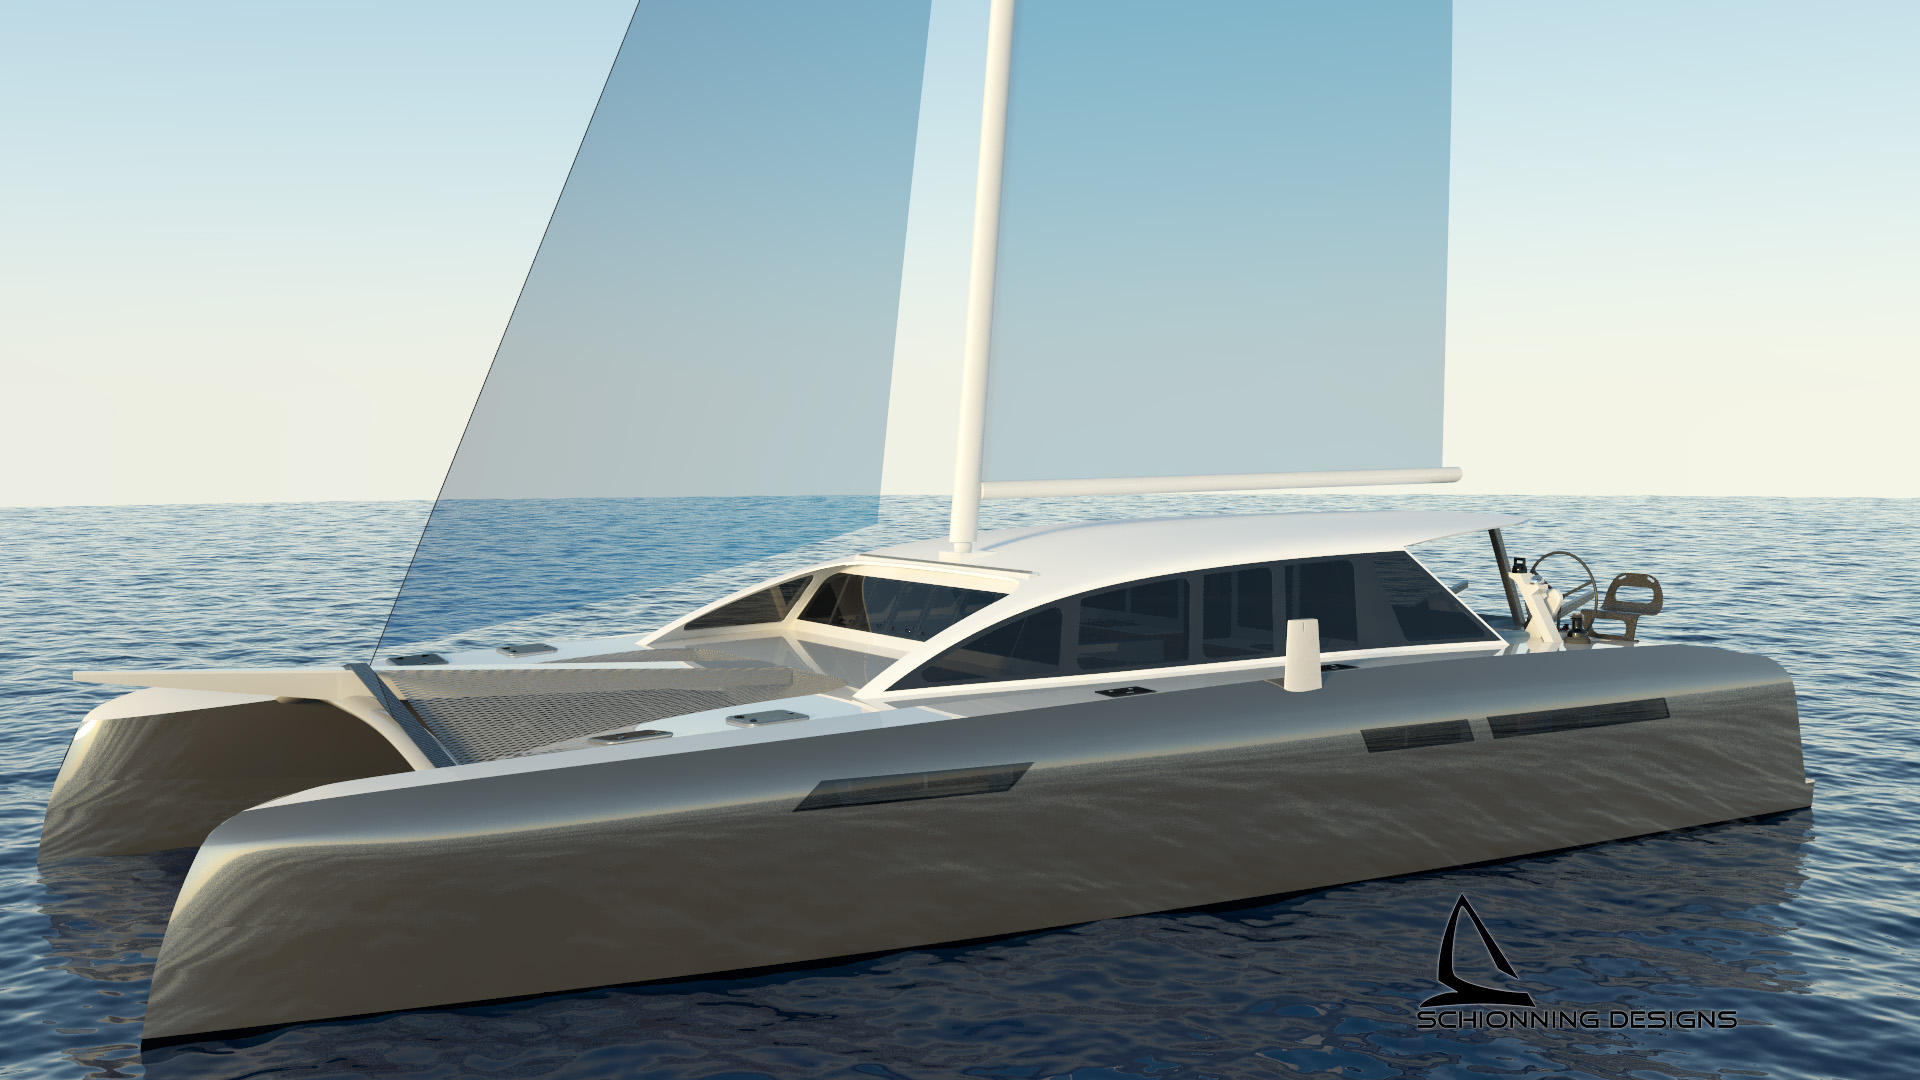 CM²52 Performance cruising catamaran by Schionning designs is designed as a lightweight owner cruiser racer or for theperformance charter owner.